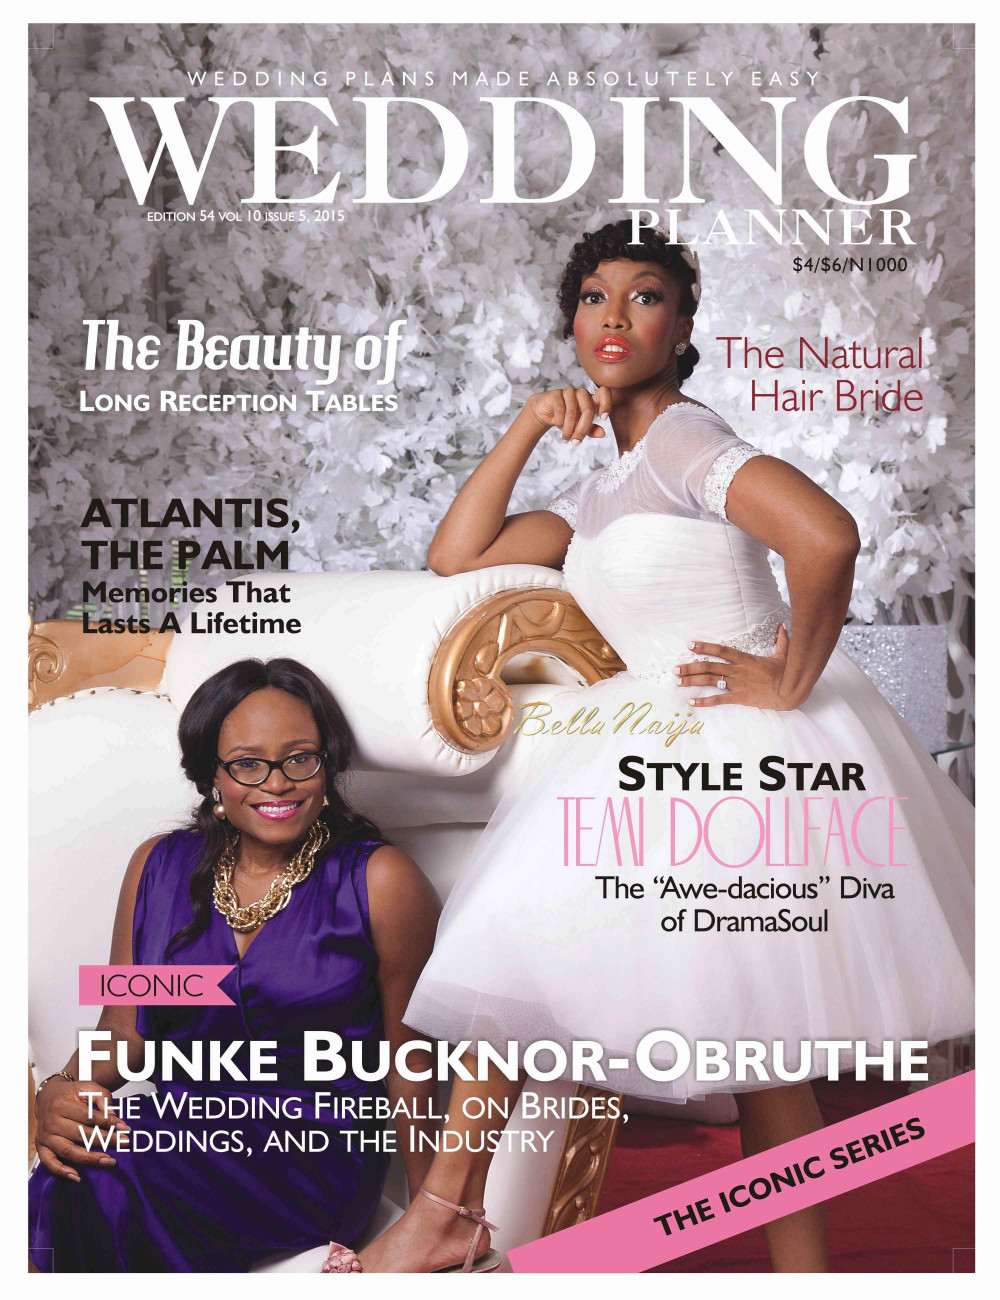 The Latest Issue Of Wedding Planner Magazine Is Out And Cover Star Non Other Than Music Temi Dollface As She Joined By Funke